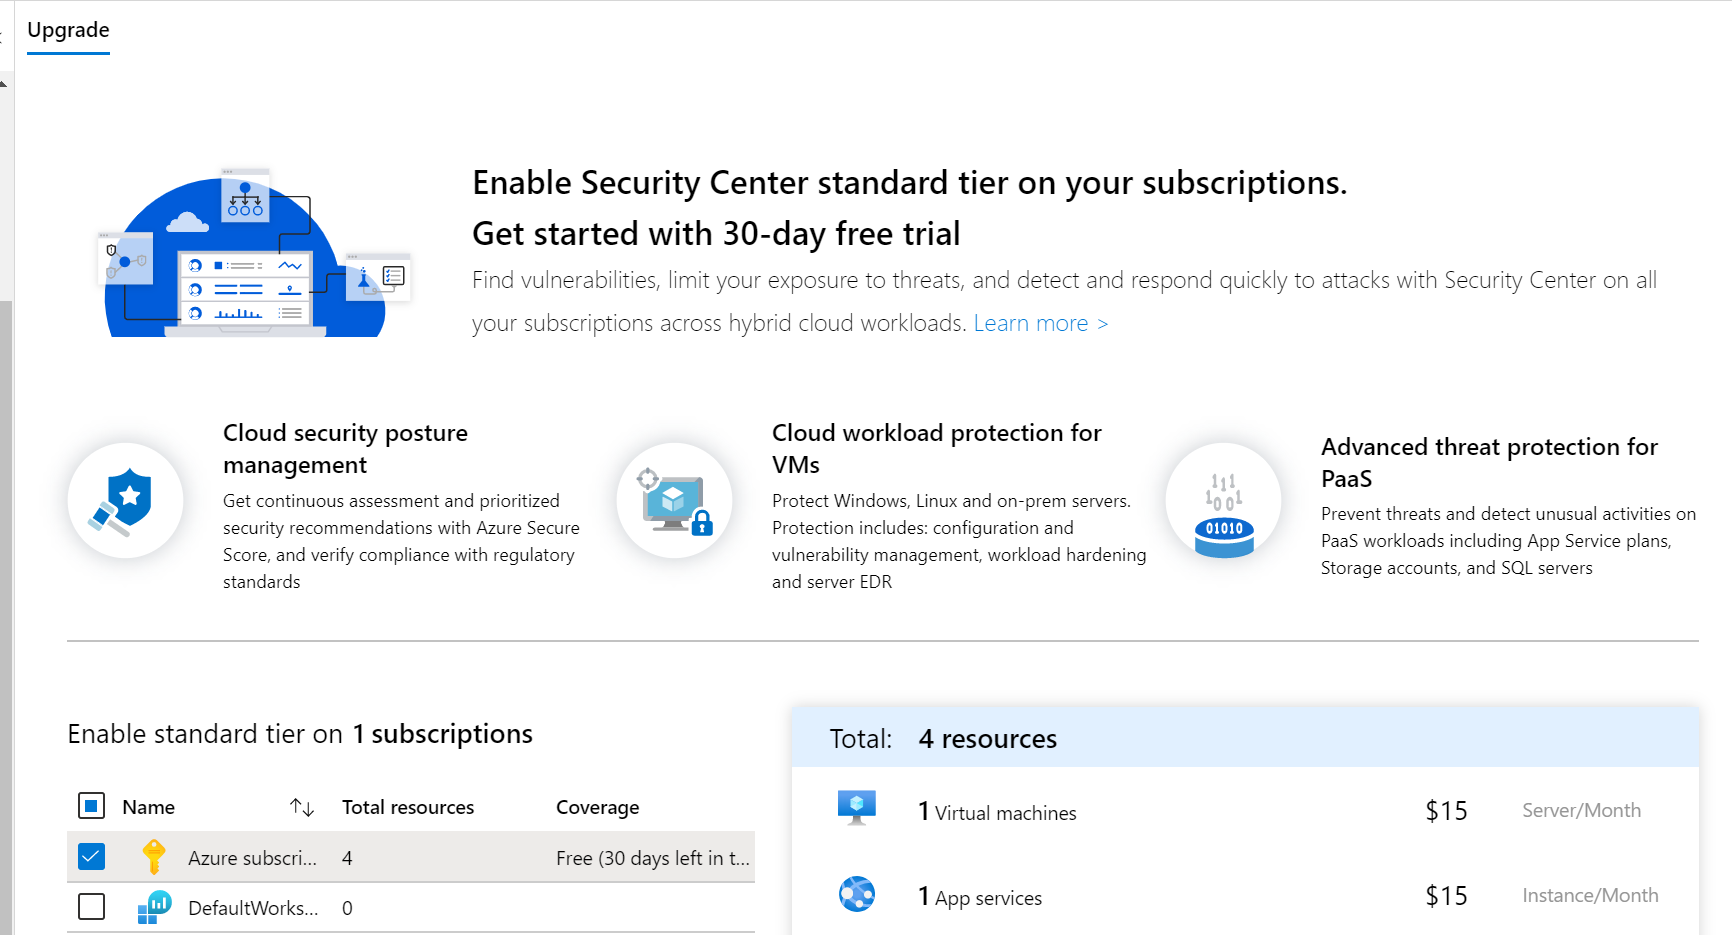 Get started with Security Center